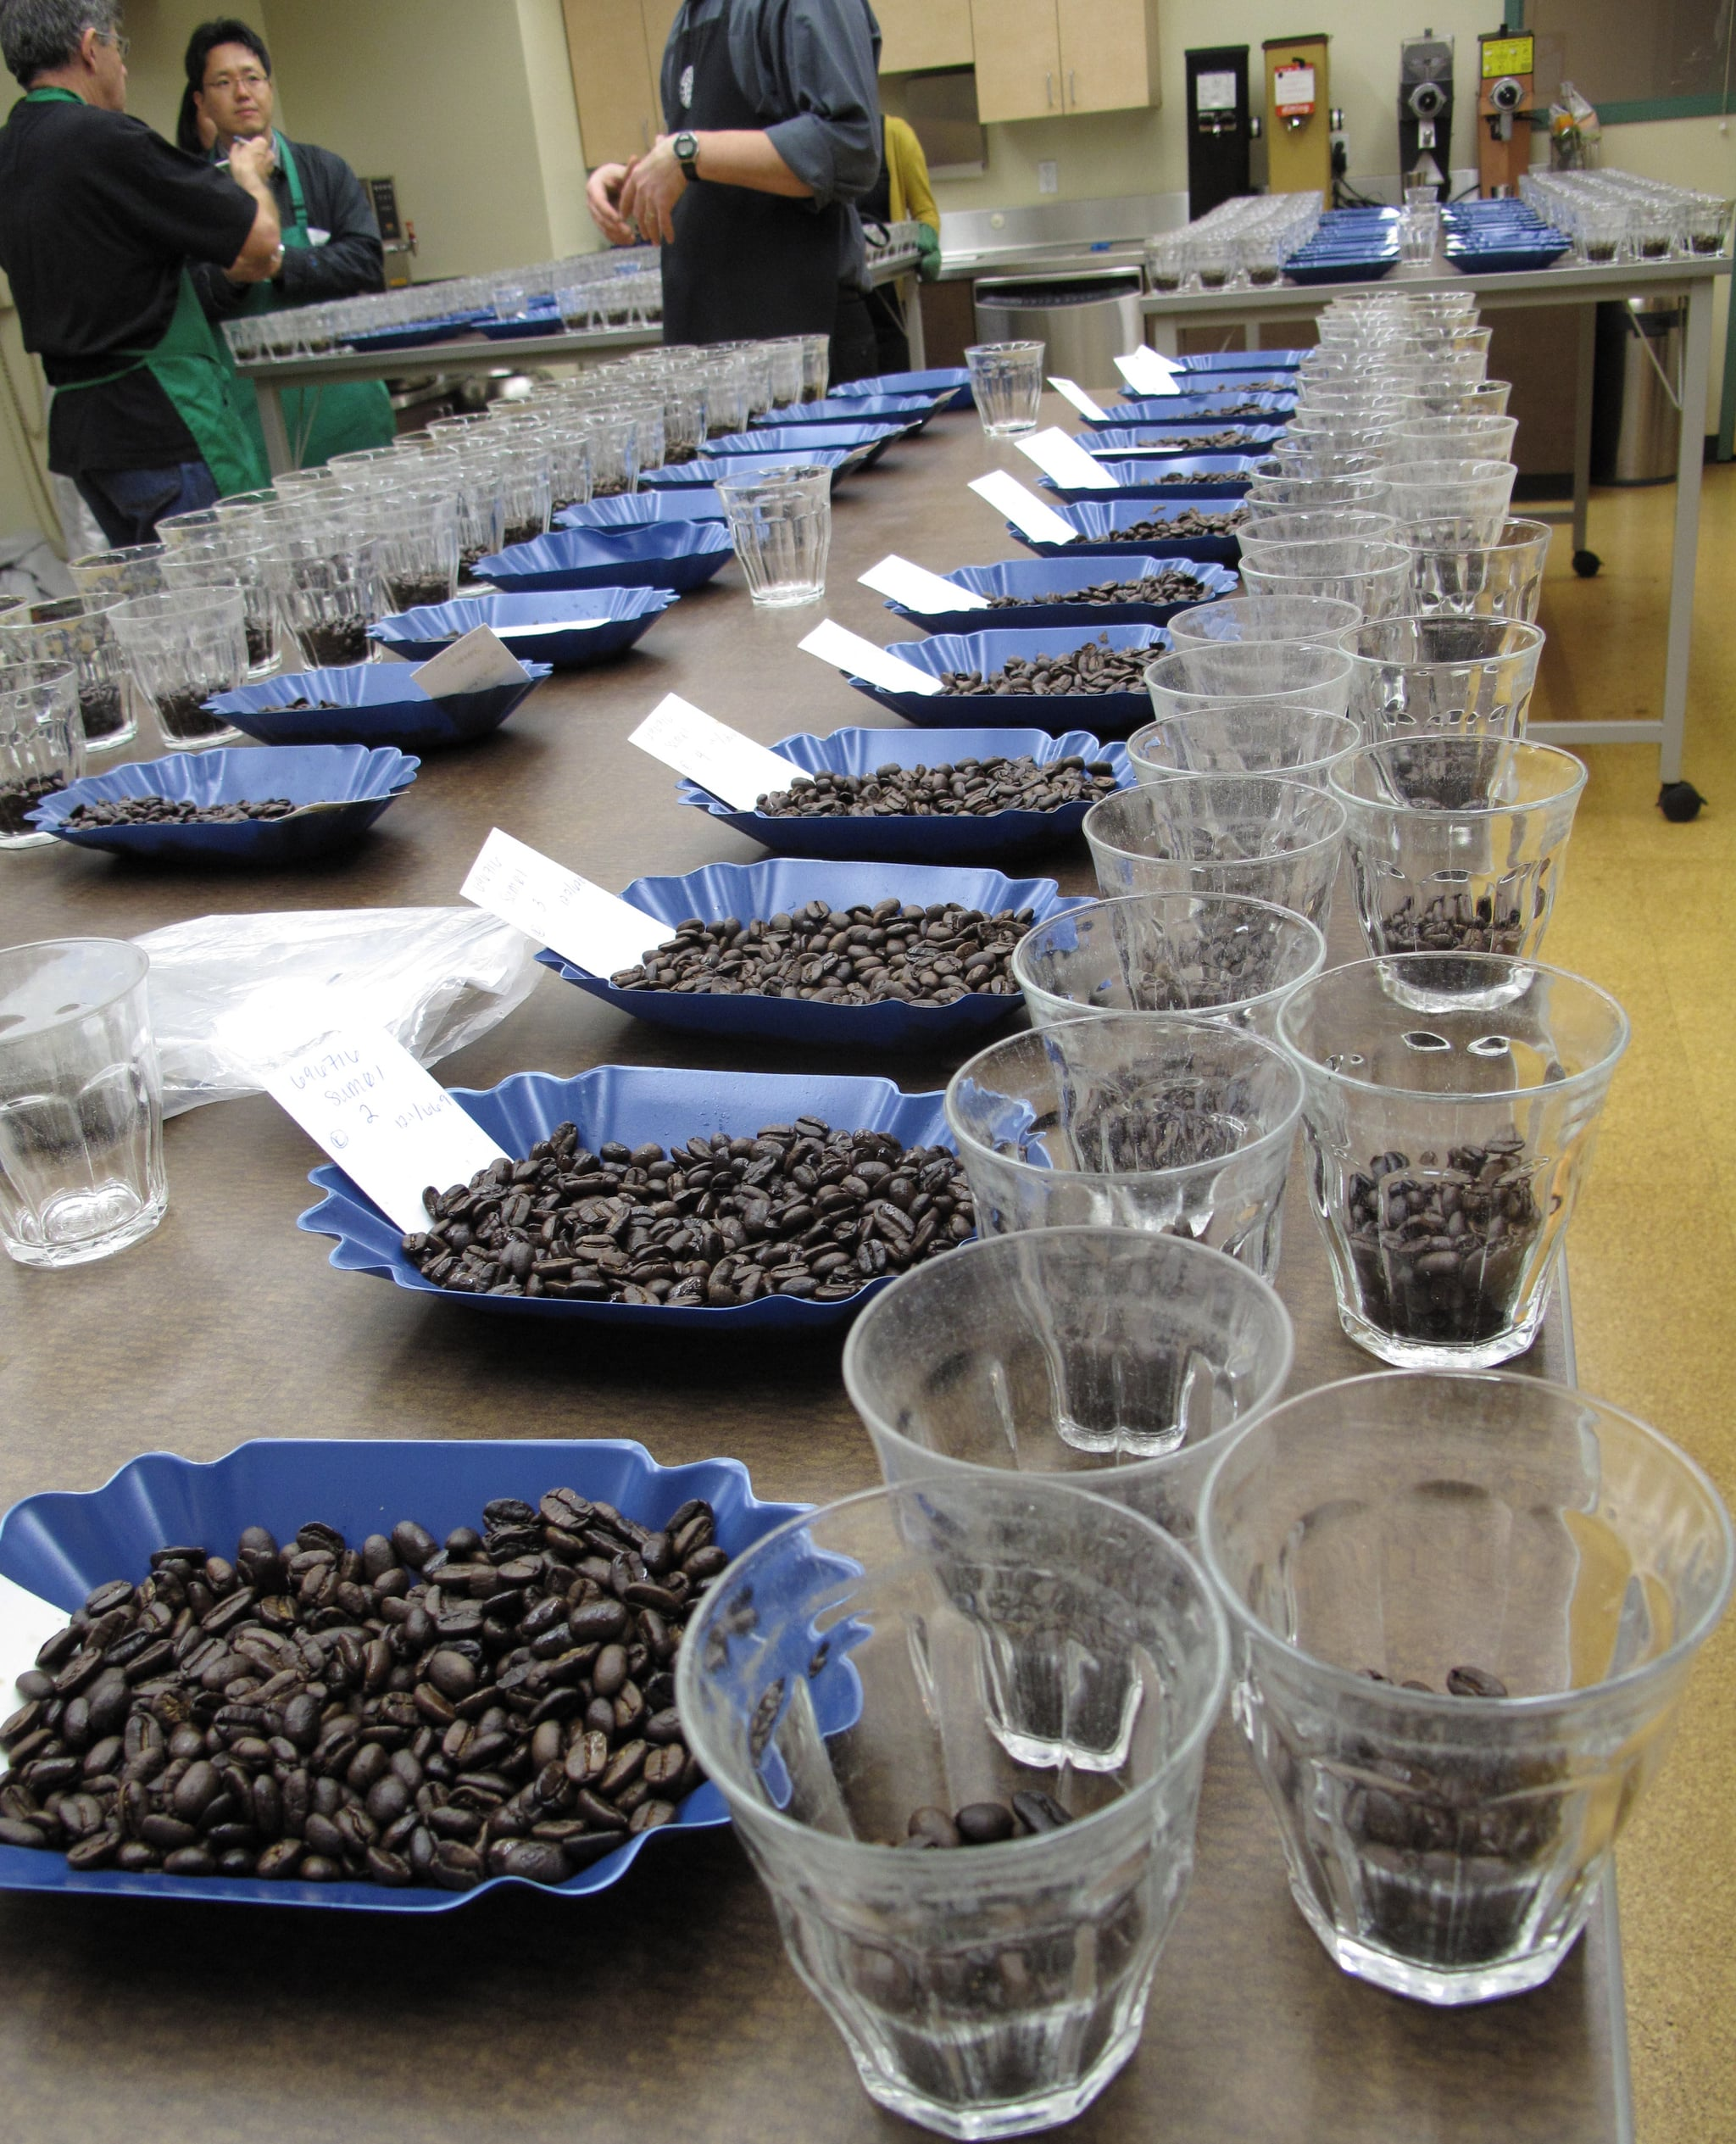 The long line of coffees waiting to be tasted by the Starbucks Coffee team.